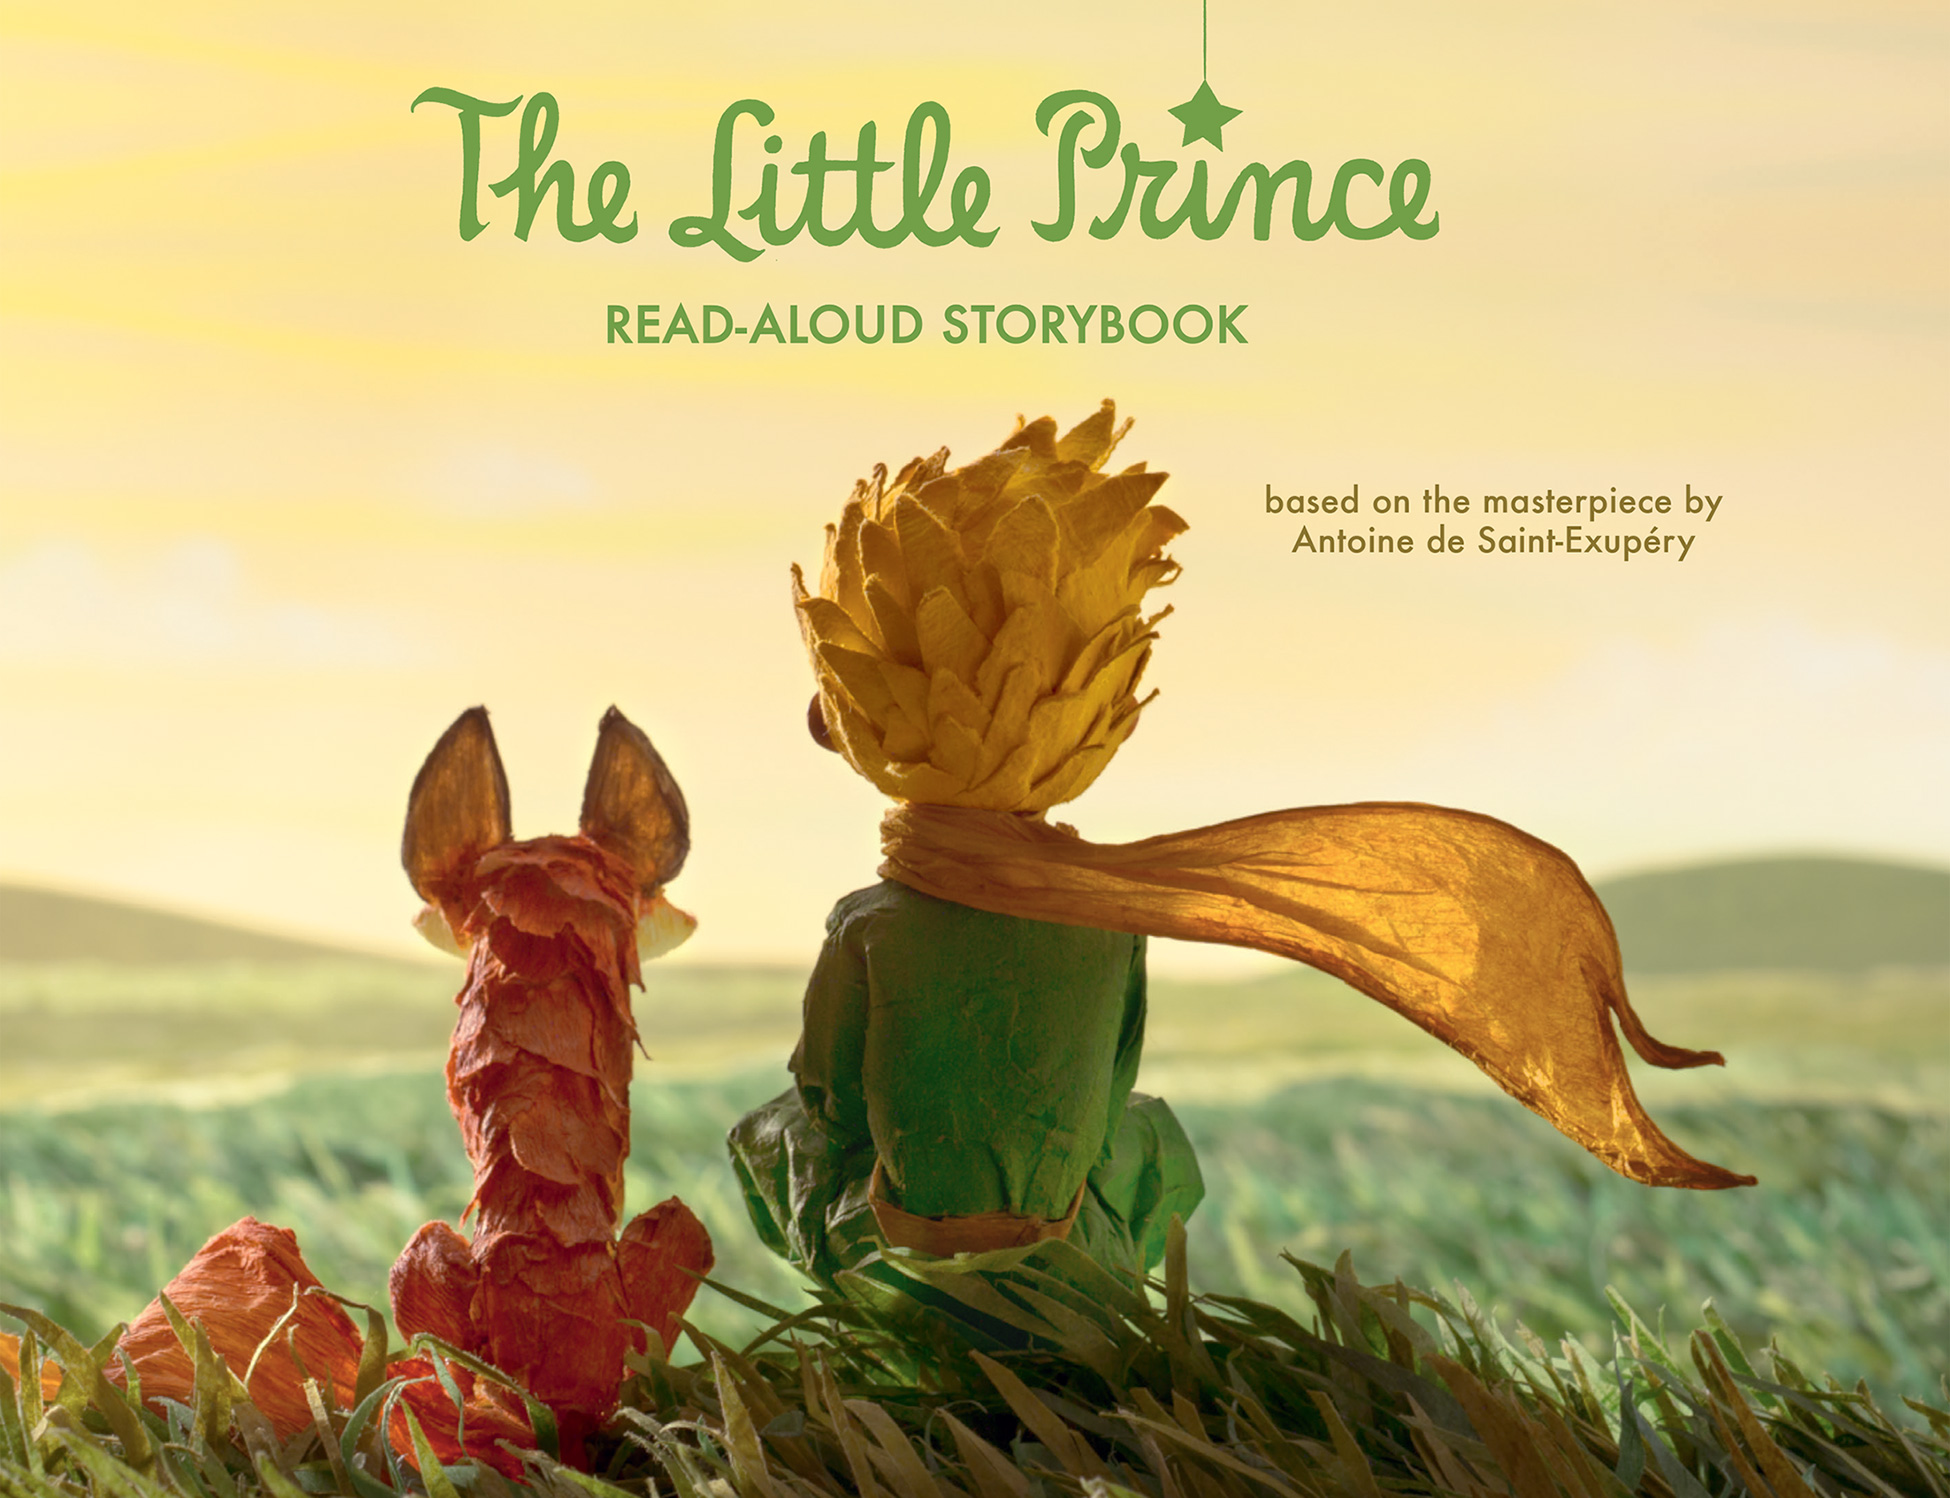 The Little Prince Read-Aloud Storybook-9780544792555